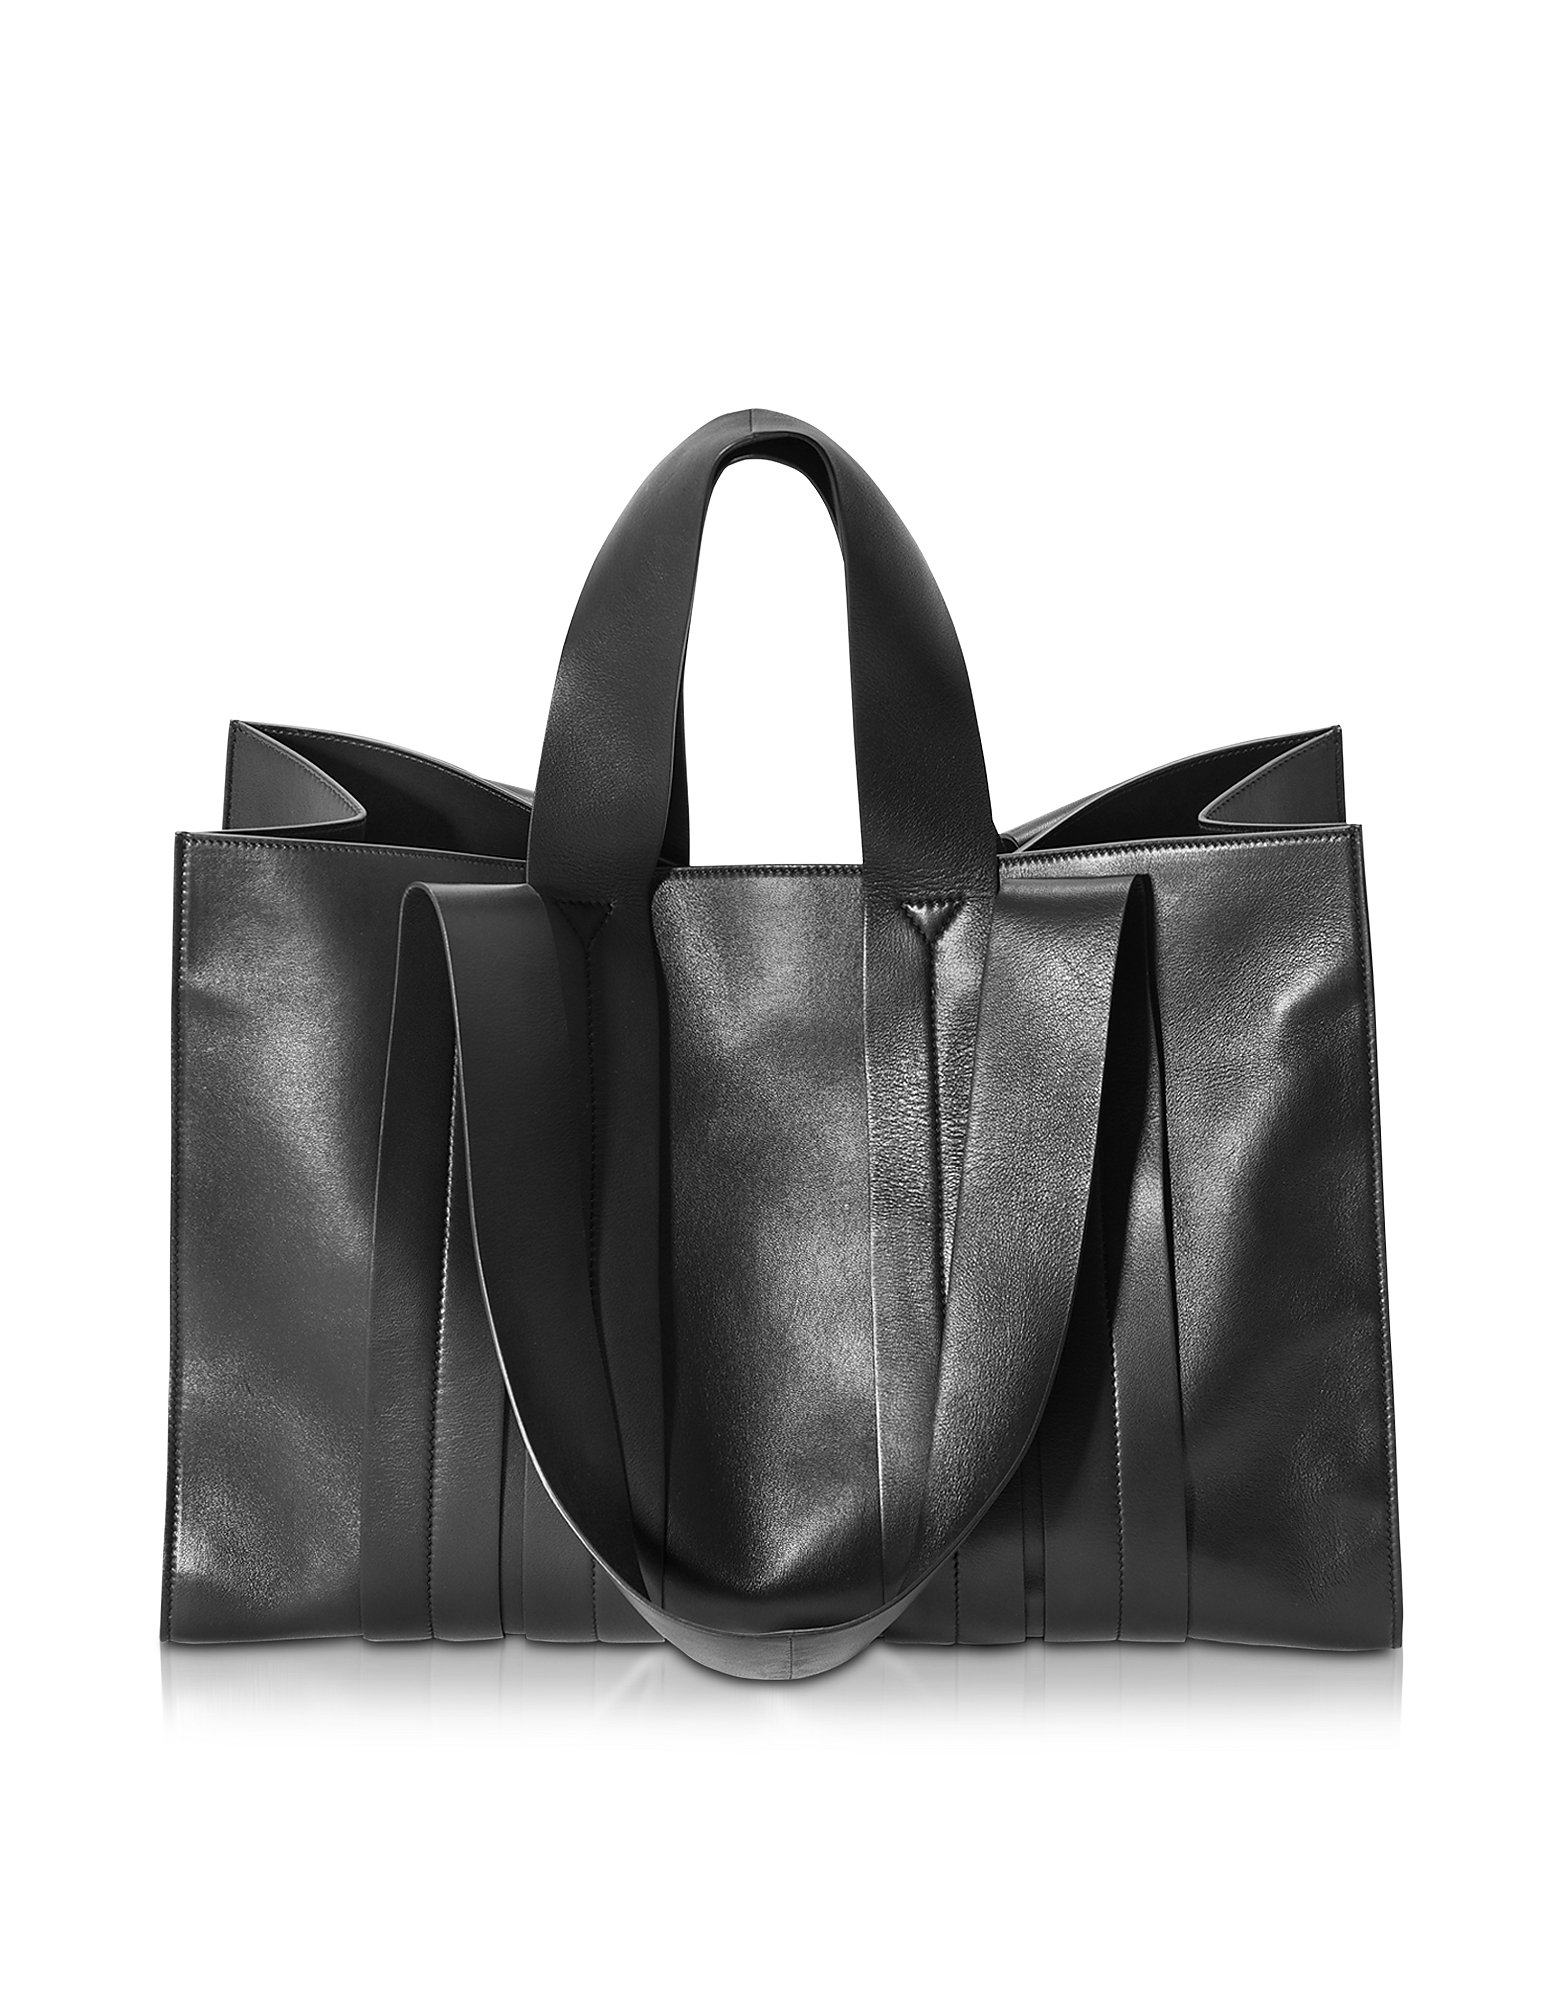 Corto Moltedo Designer Handbags, Costanza Beach Club Large Black Leather Tote (Luggage & Bags) photo